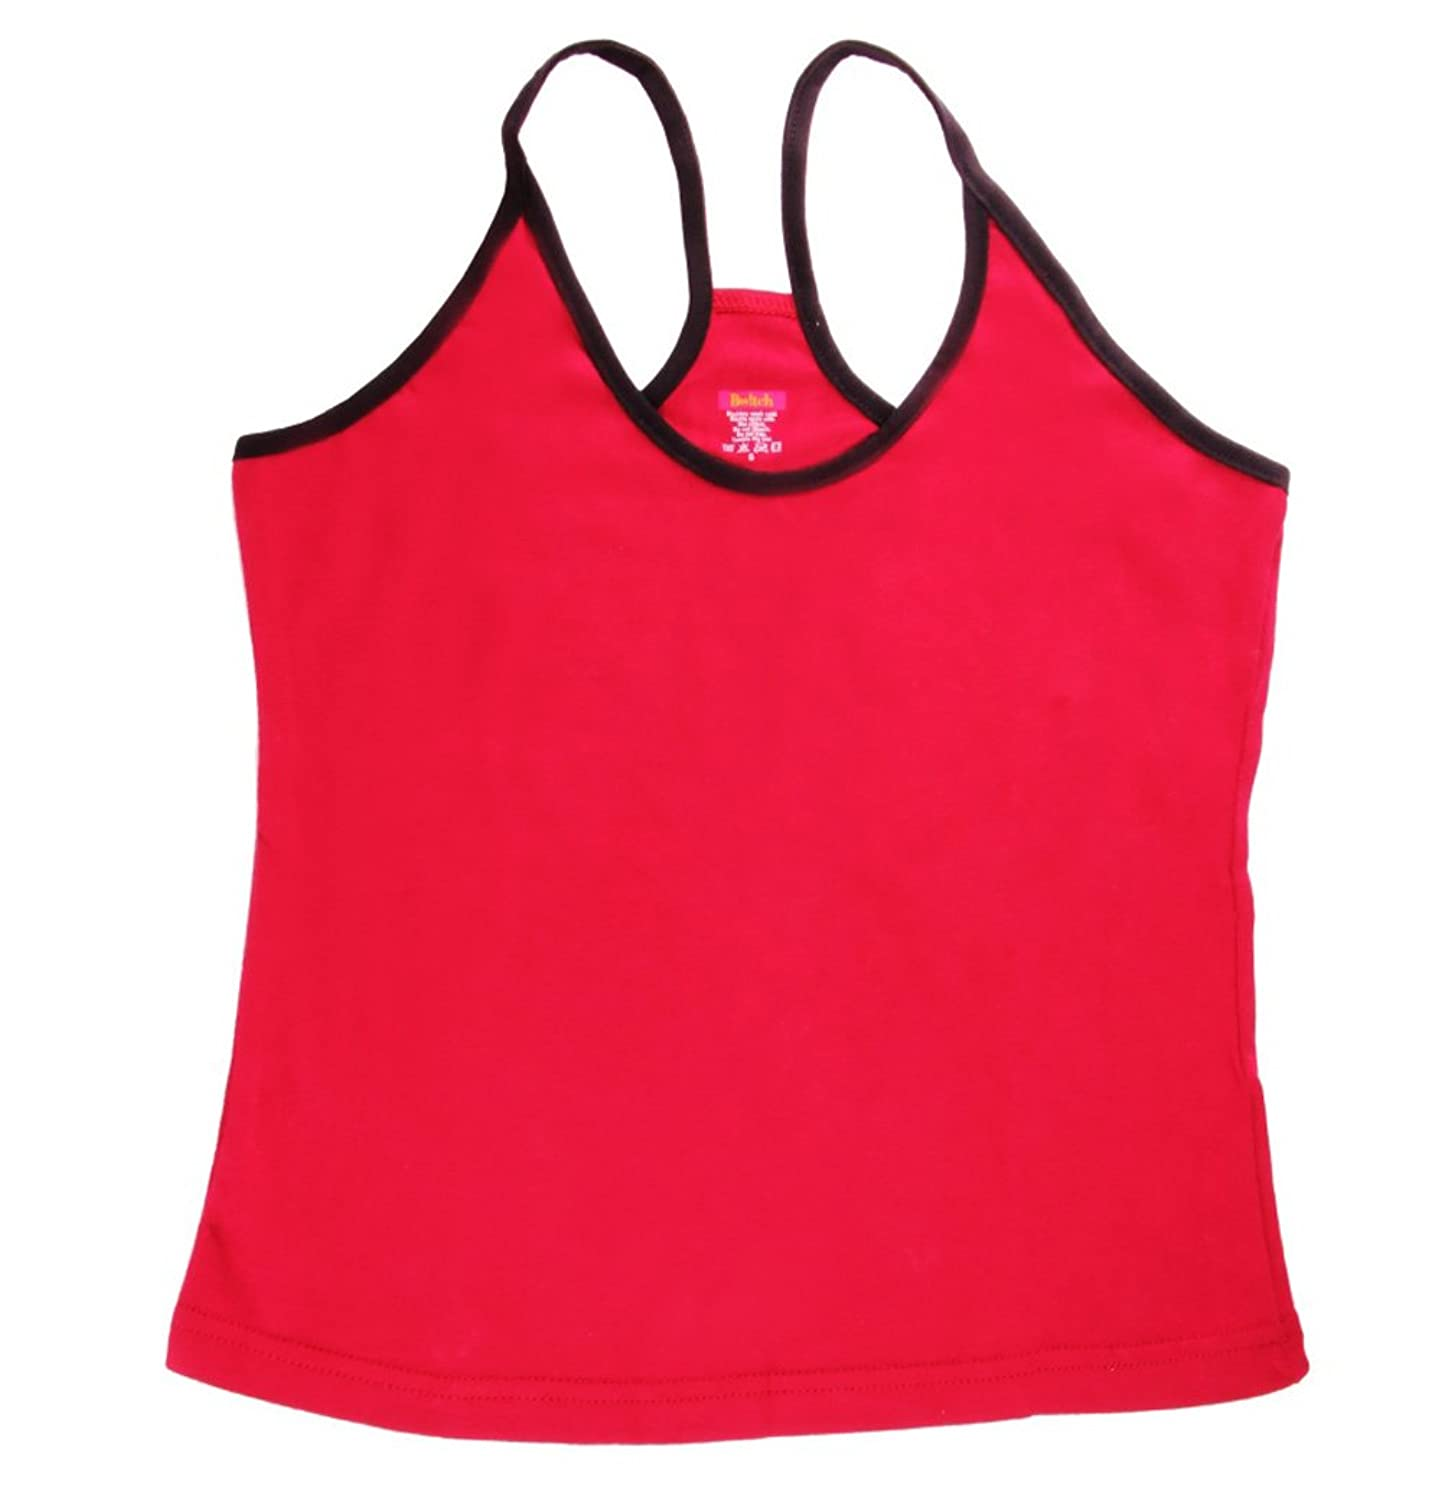 http://www.amazon.in/Bwitch-Womens-Maroon-Cotton-Camisole-32/dp/B00KMTJD8O/ref=lp_1968471031_1_11?s=apparel&ie=UTF8&qid=1403337516&sr=1-11